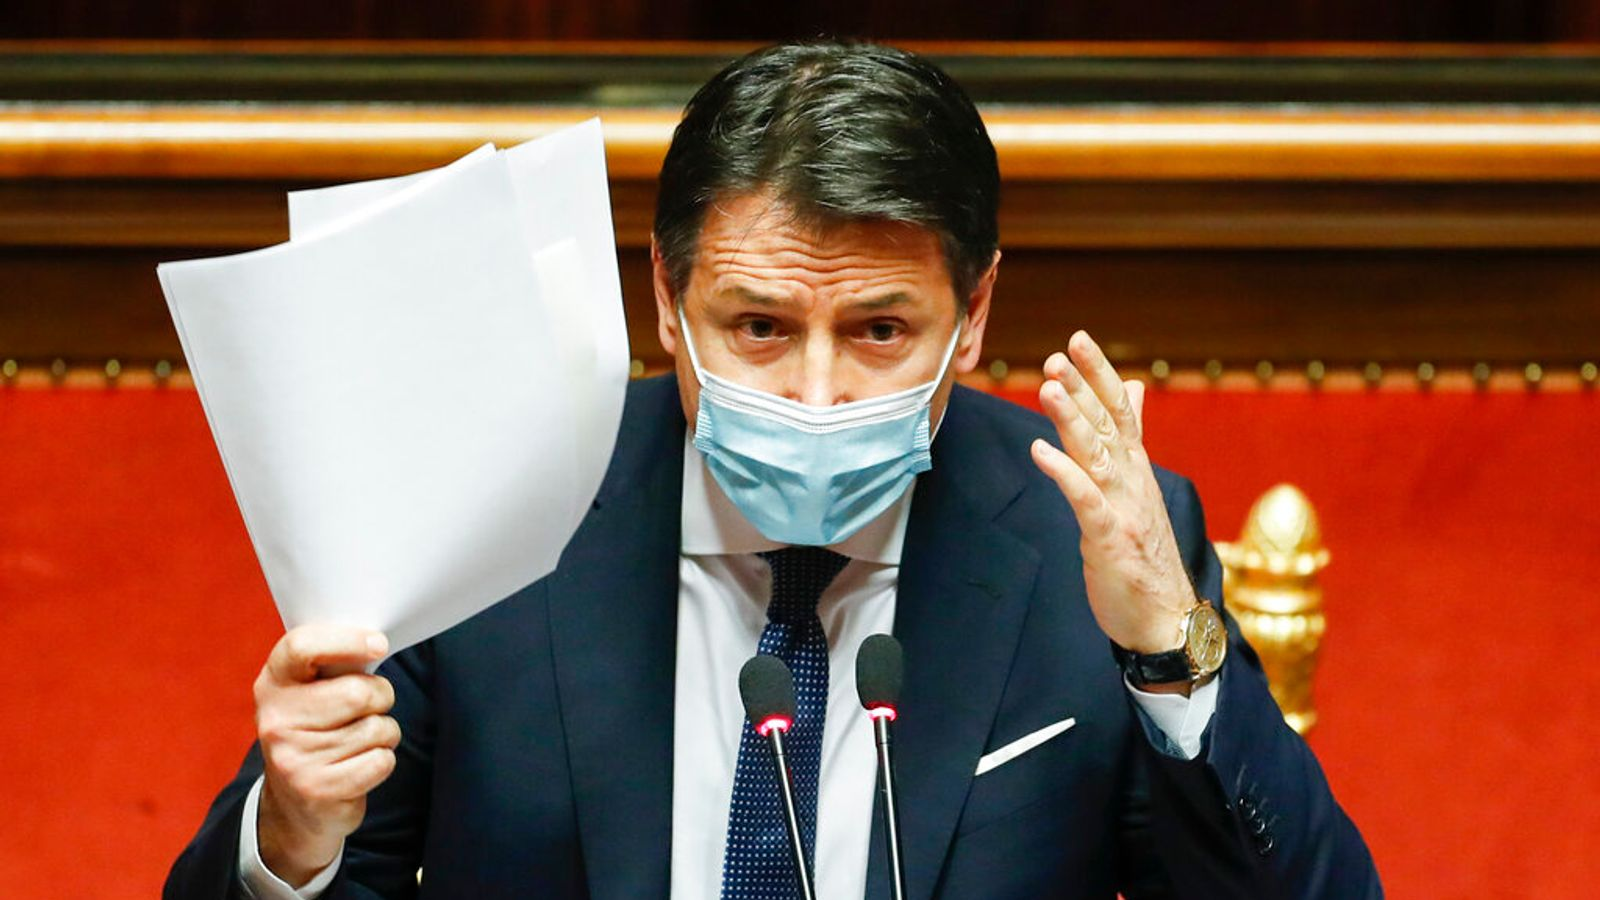 Italian PM Giuseppe Conte to offer resignation after defection leaves his coalition short of majority   World News   Sky News